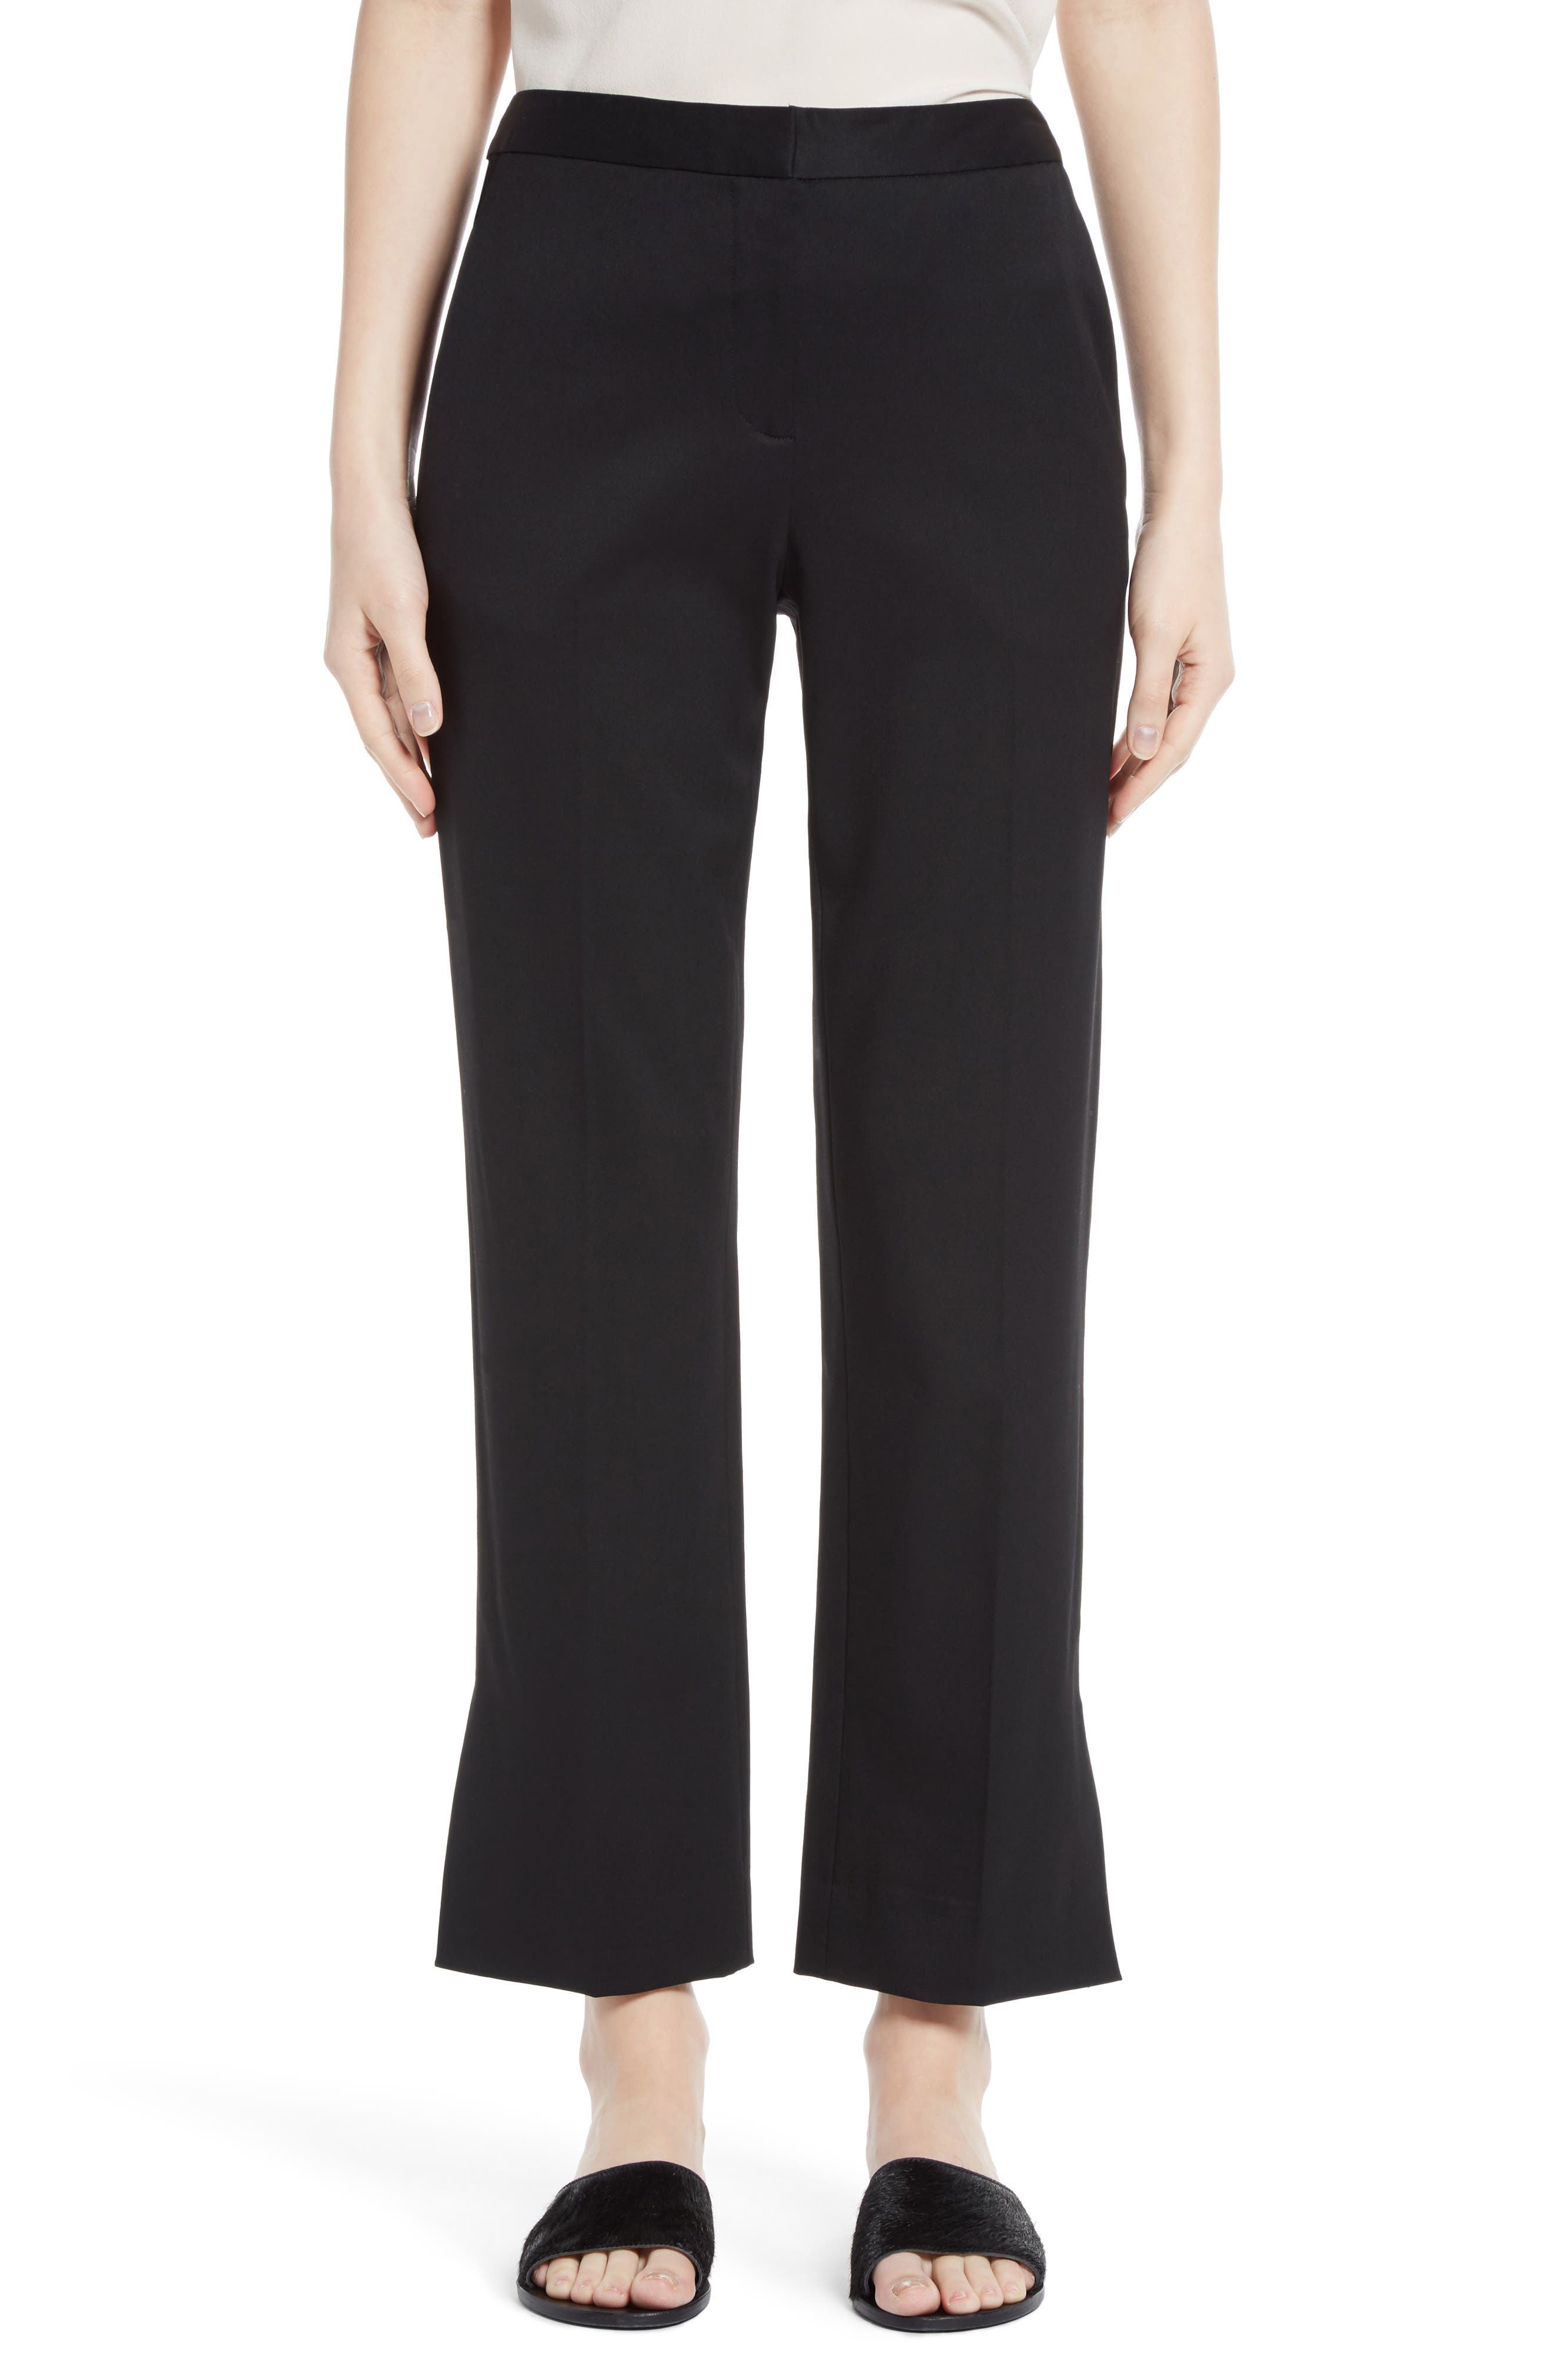 GREY Jason Wu Split Hem Straight Leg Pants